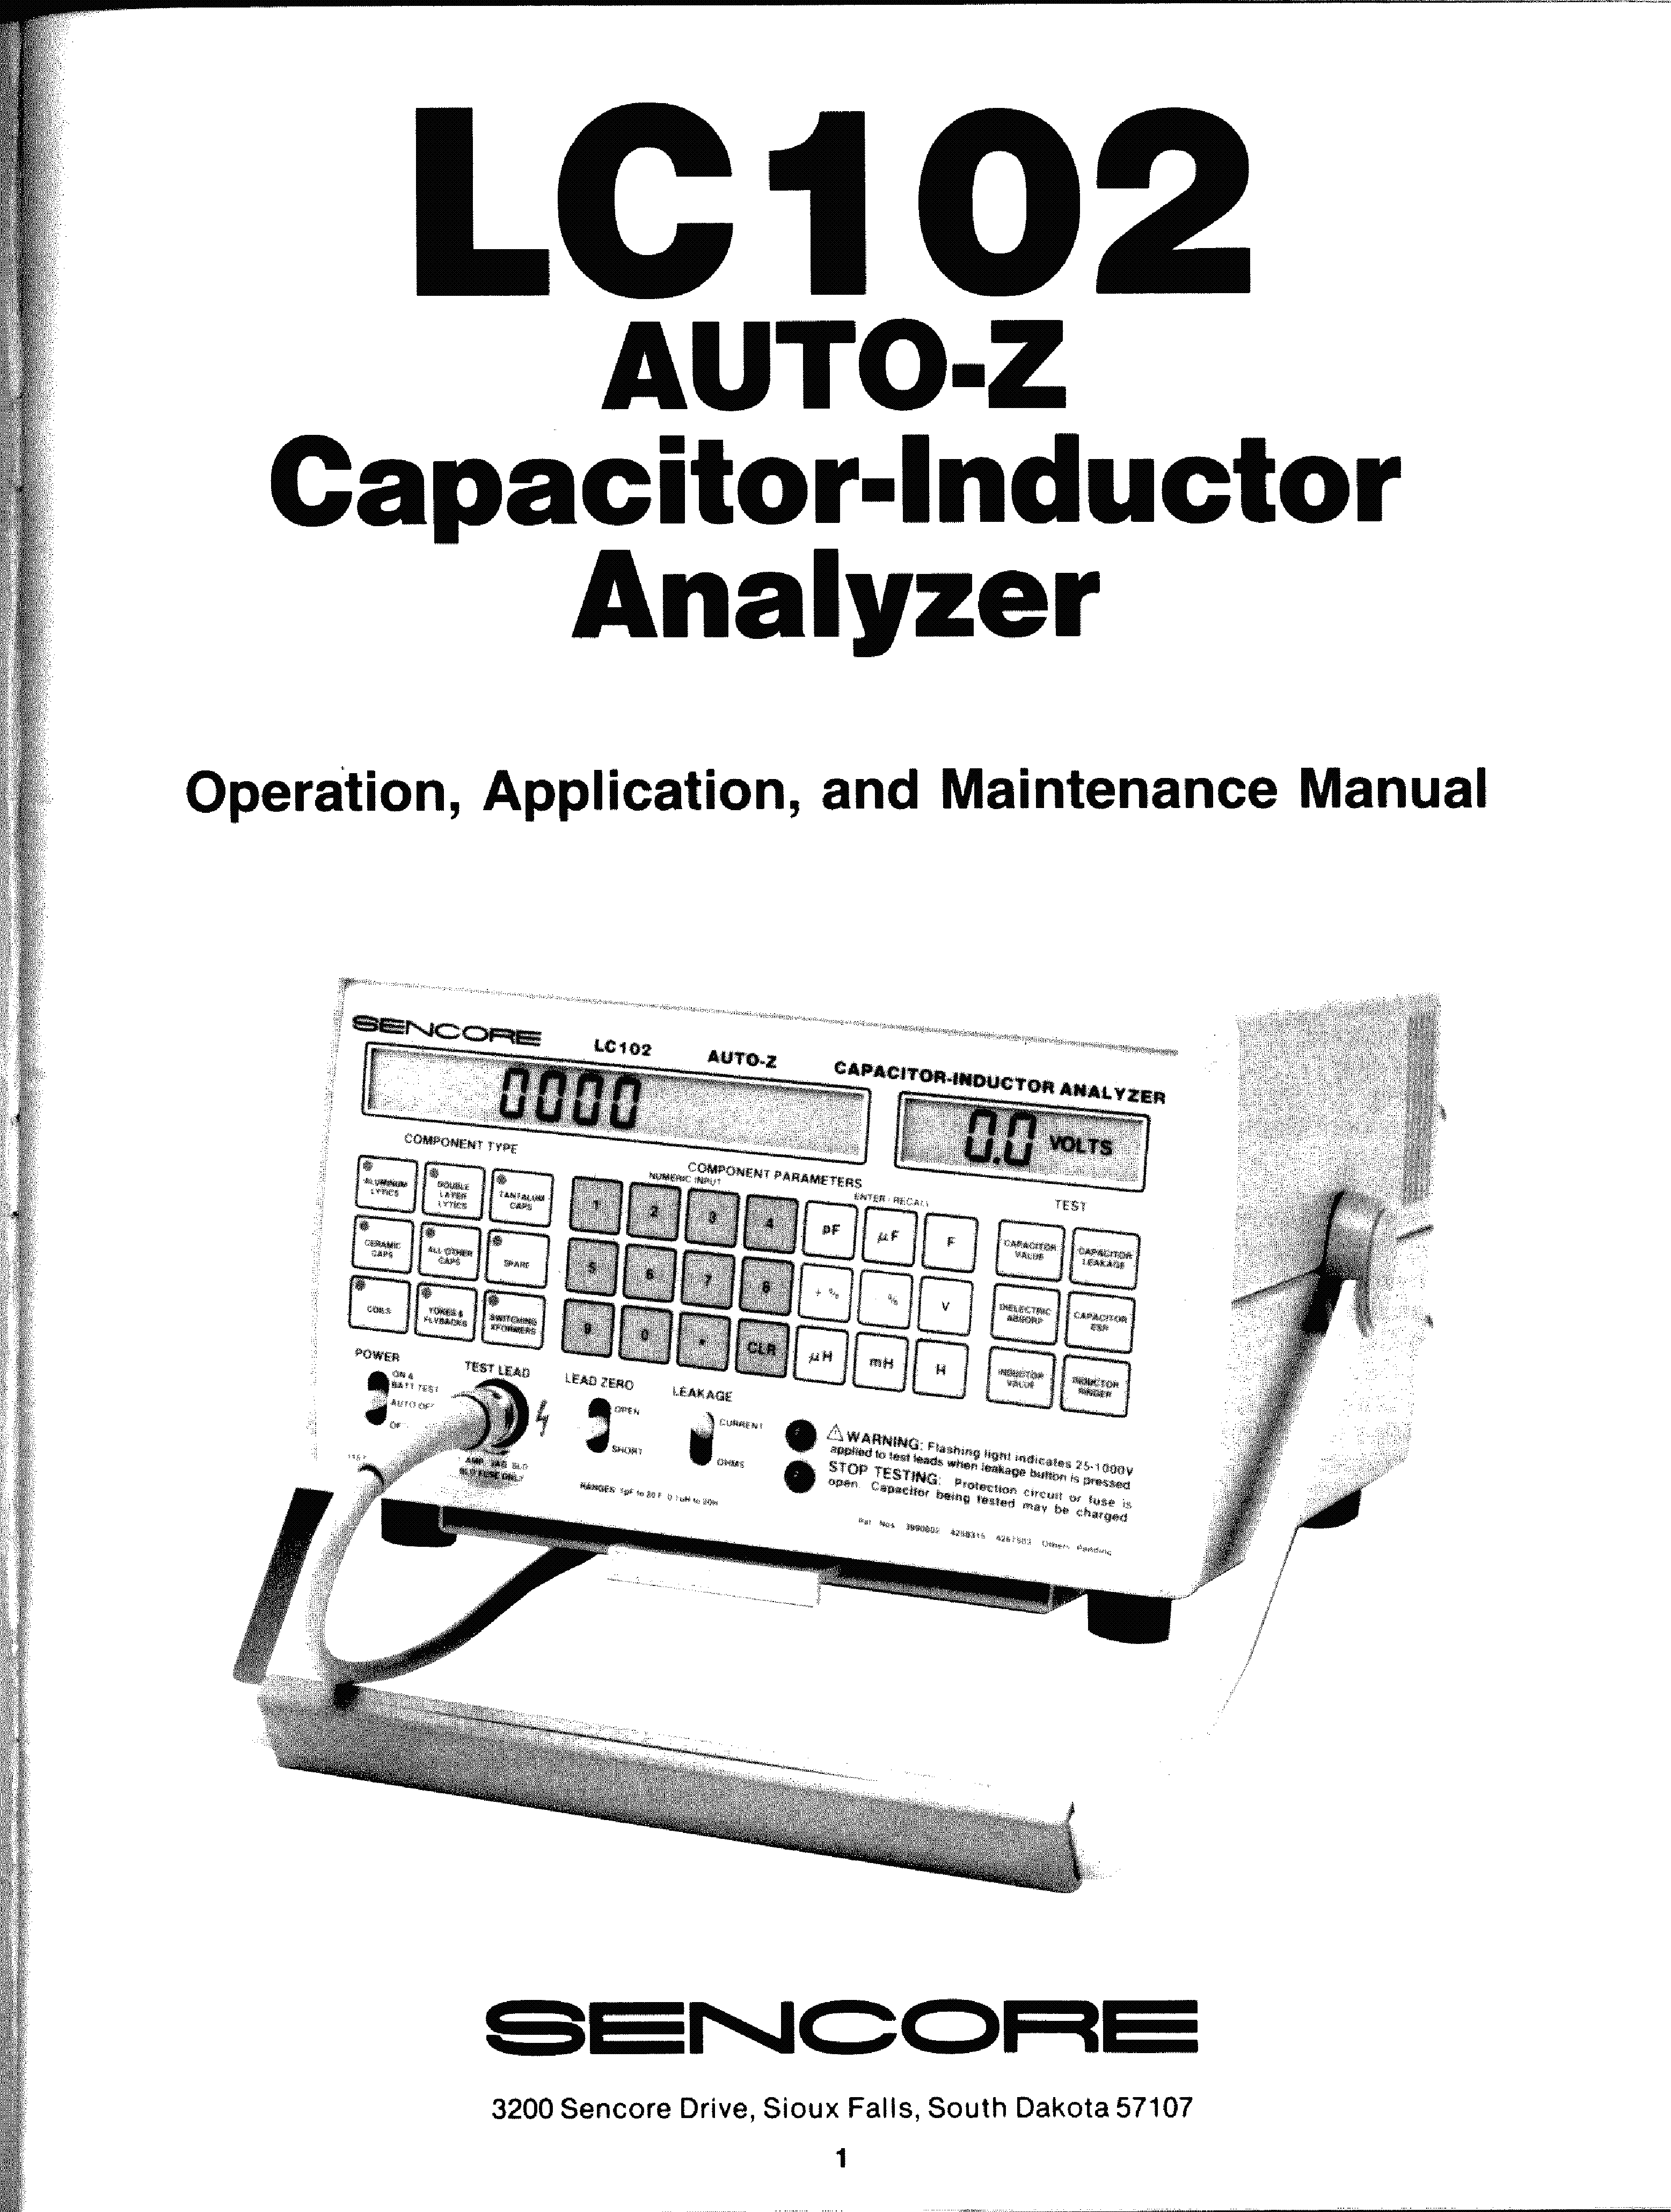 SENCORE LC102 AUTO-Z CAPACITOR-INDUCTOR ANALYZER service manual (1st page)